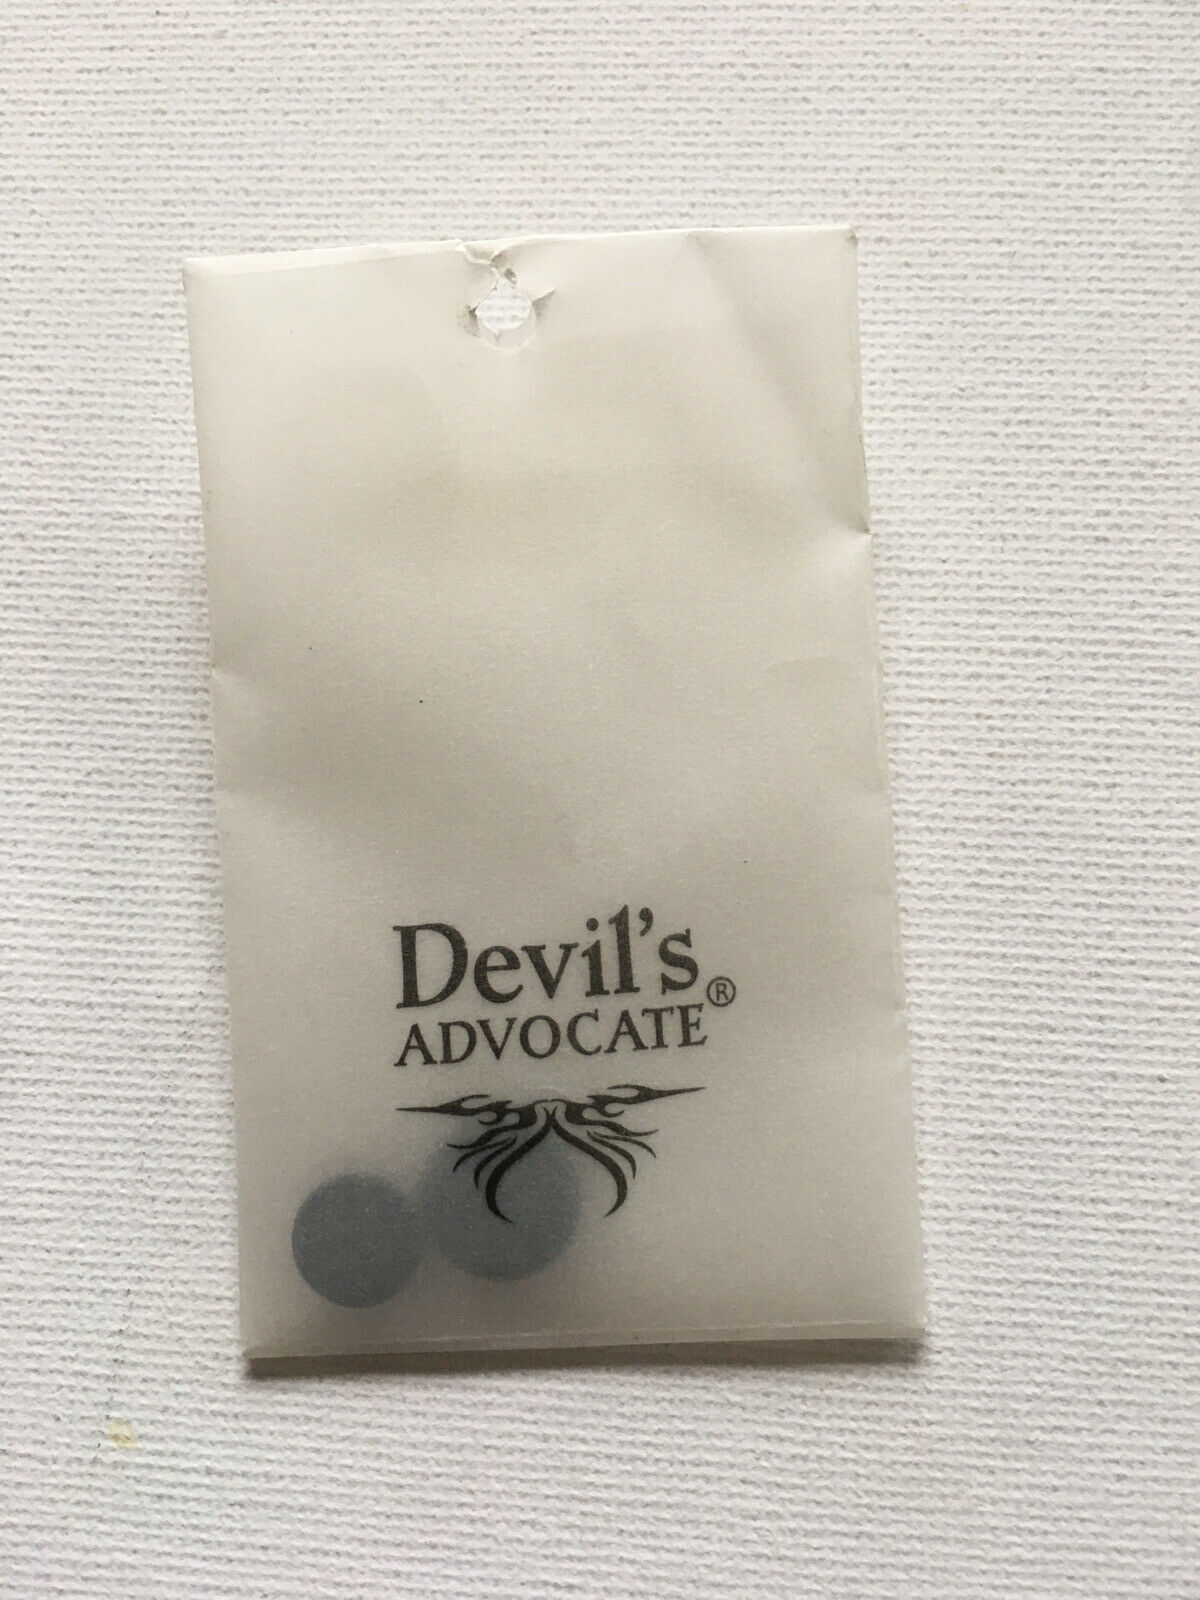 Devils Advocate Shirt Stiffeners And Spare Buttons Black BNWT